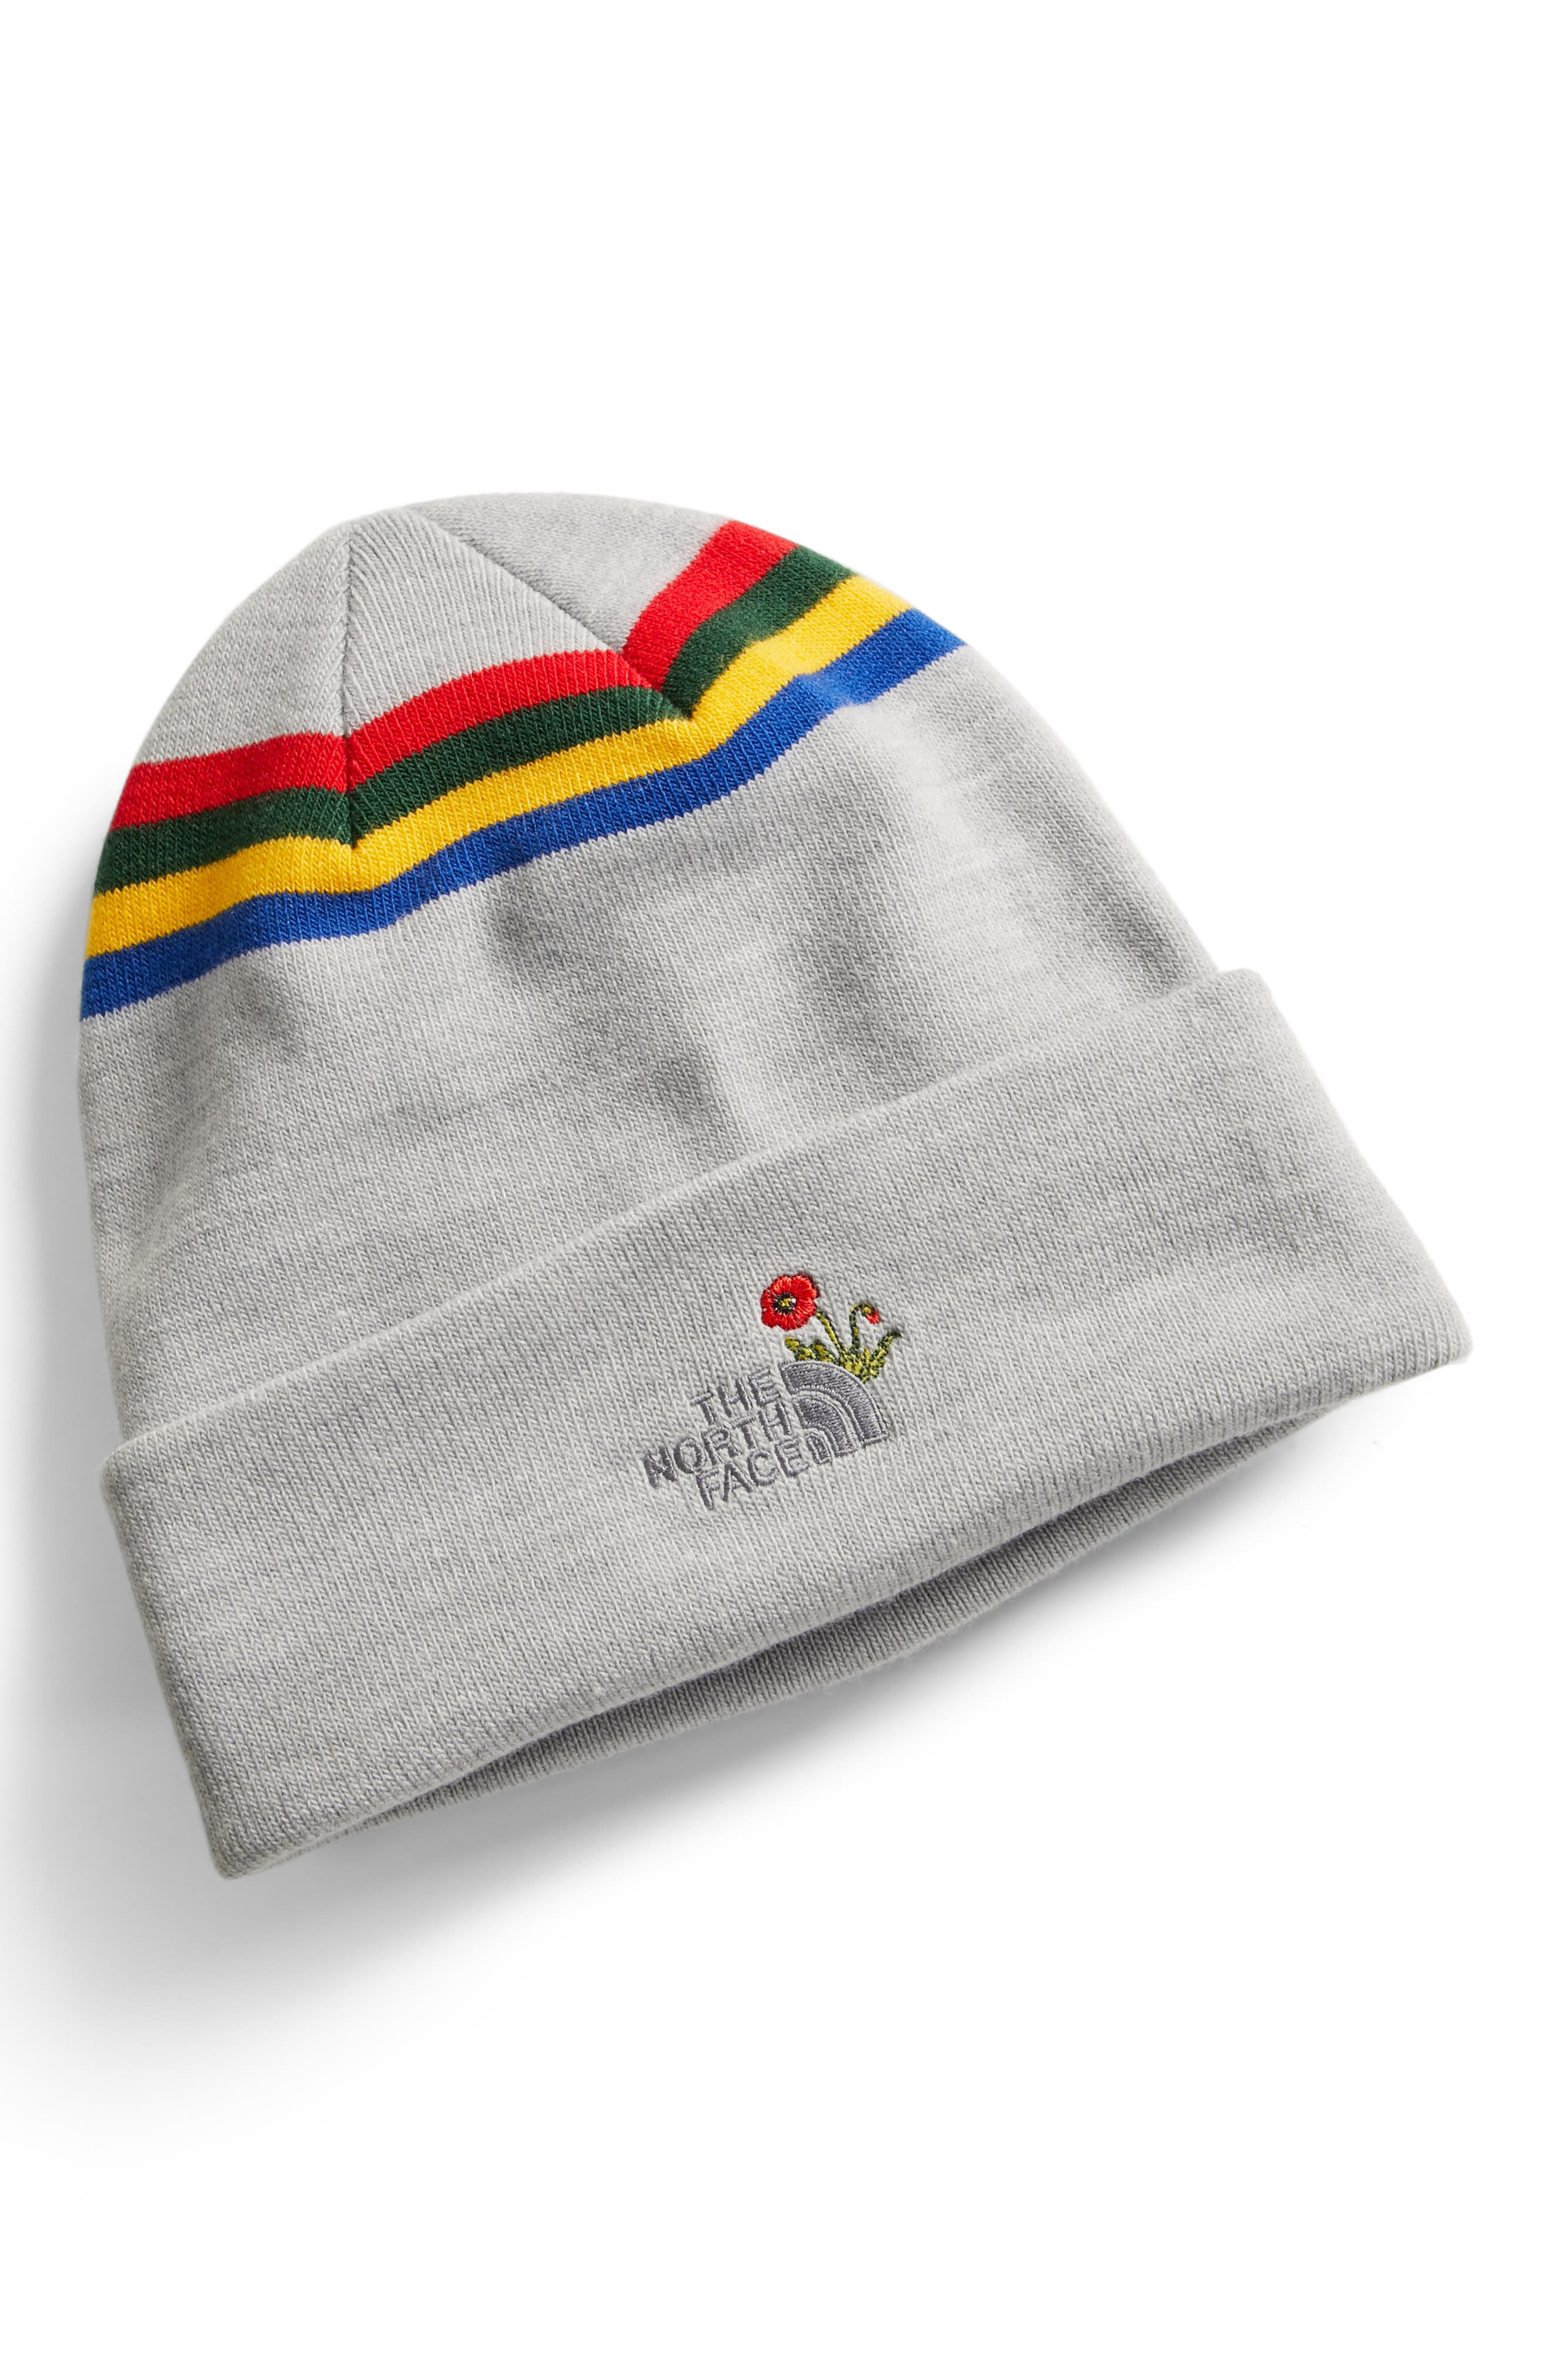 The North Face Poppy Dock Workers Beanie